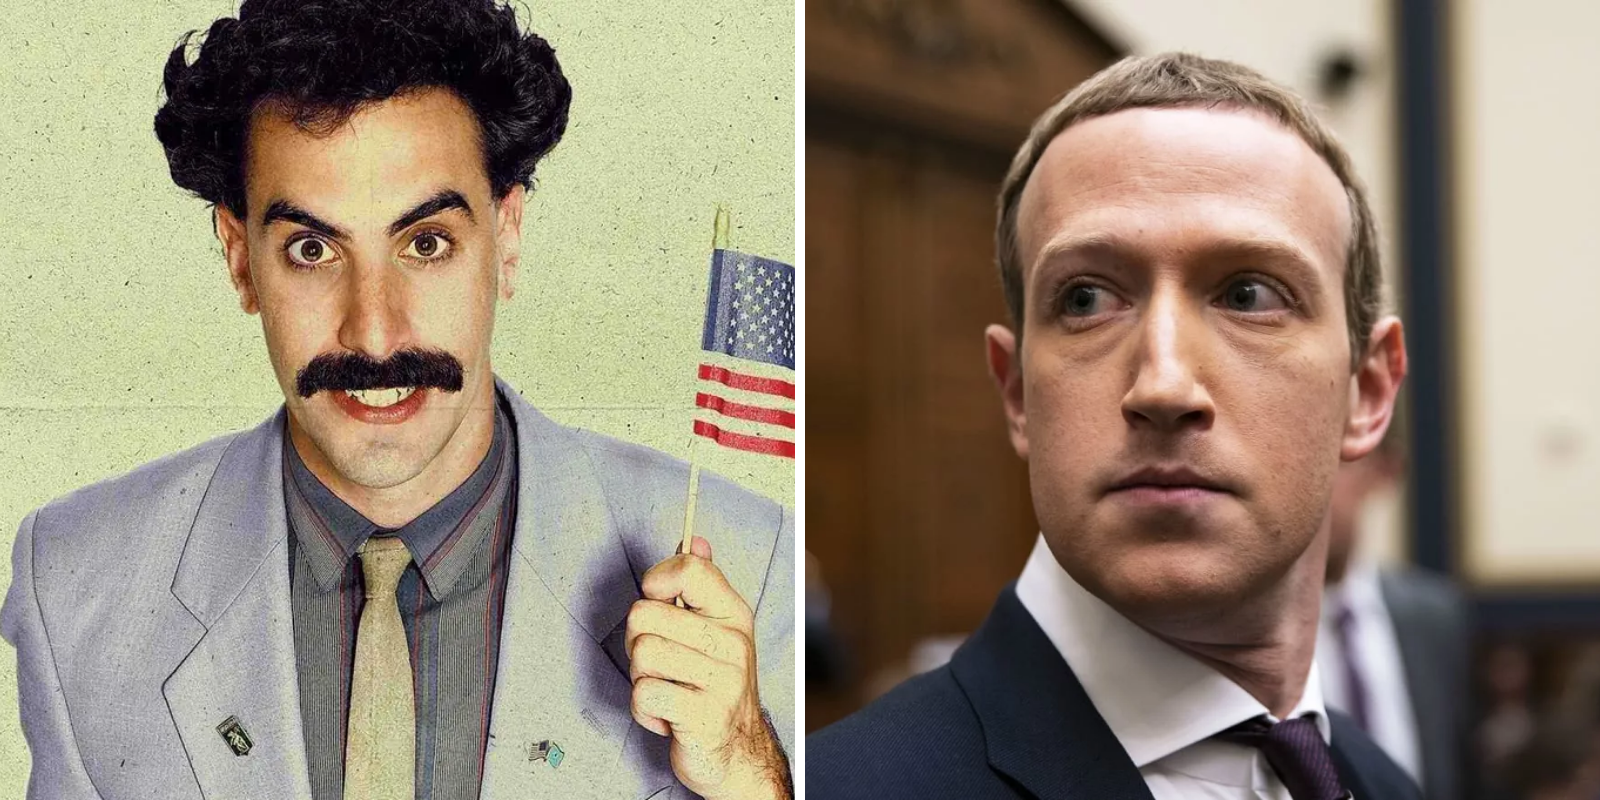 Sacha Baron Cohen would not survive his own Facebook reforms